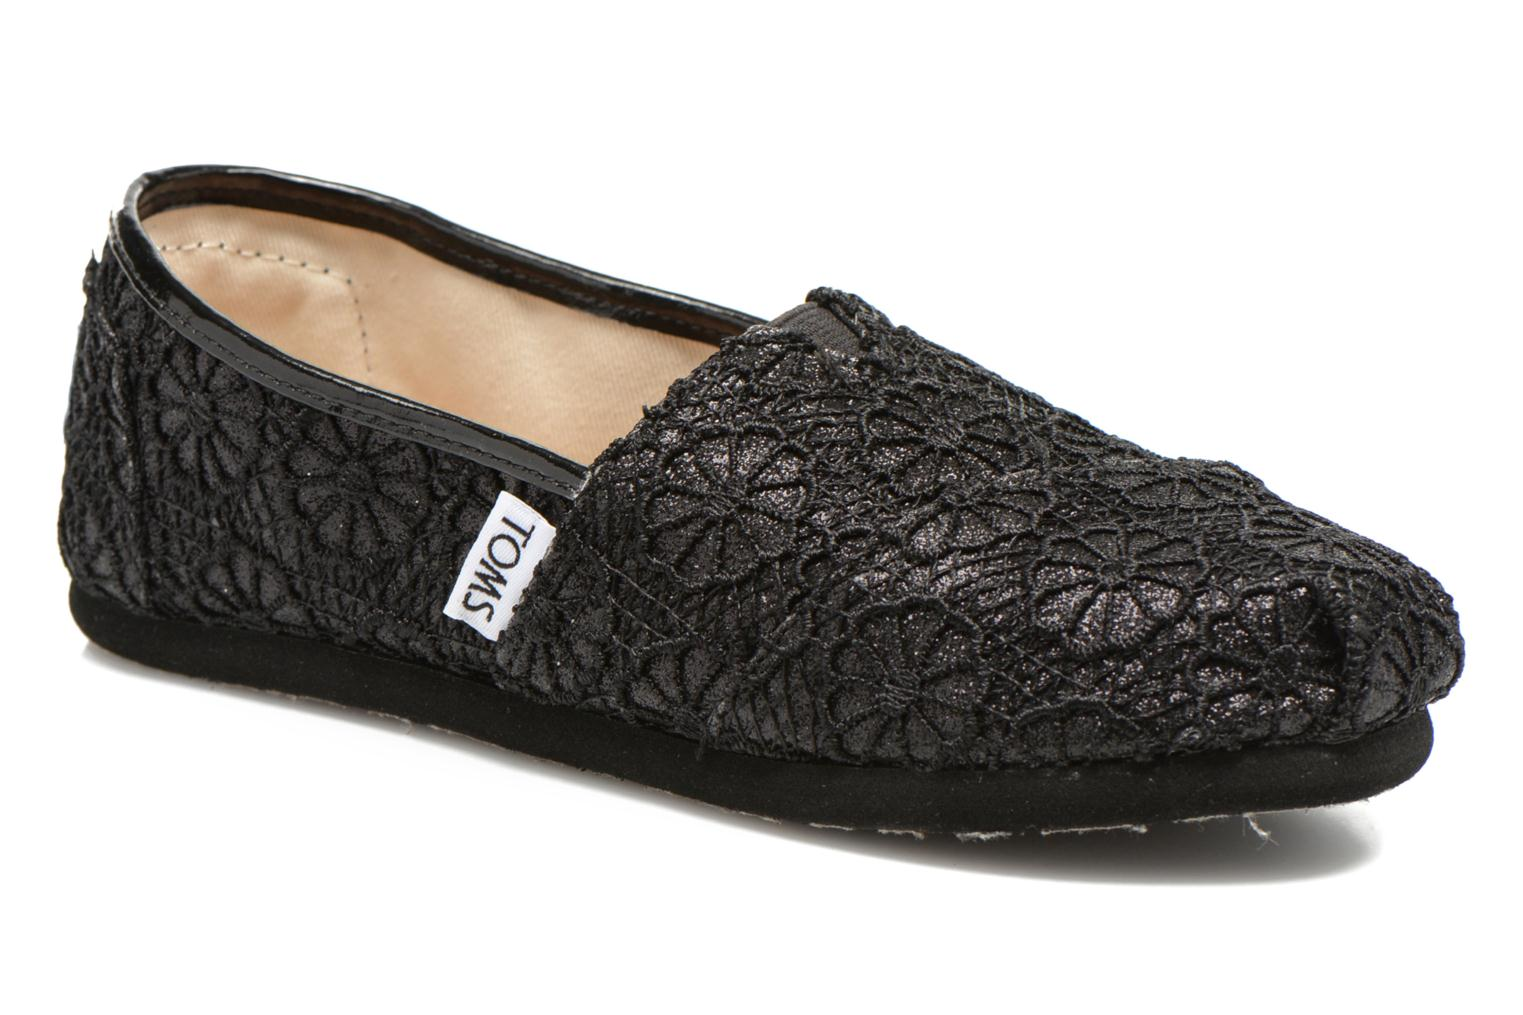 Seasonal Classics Black Crochet Glitter